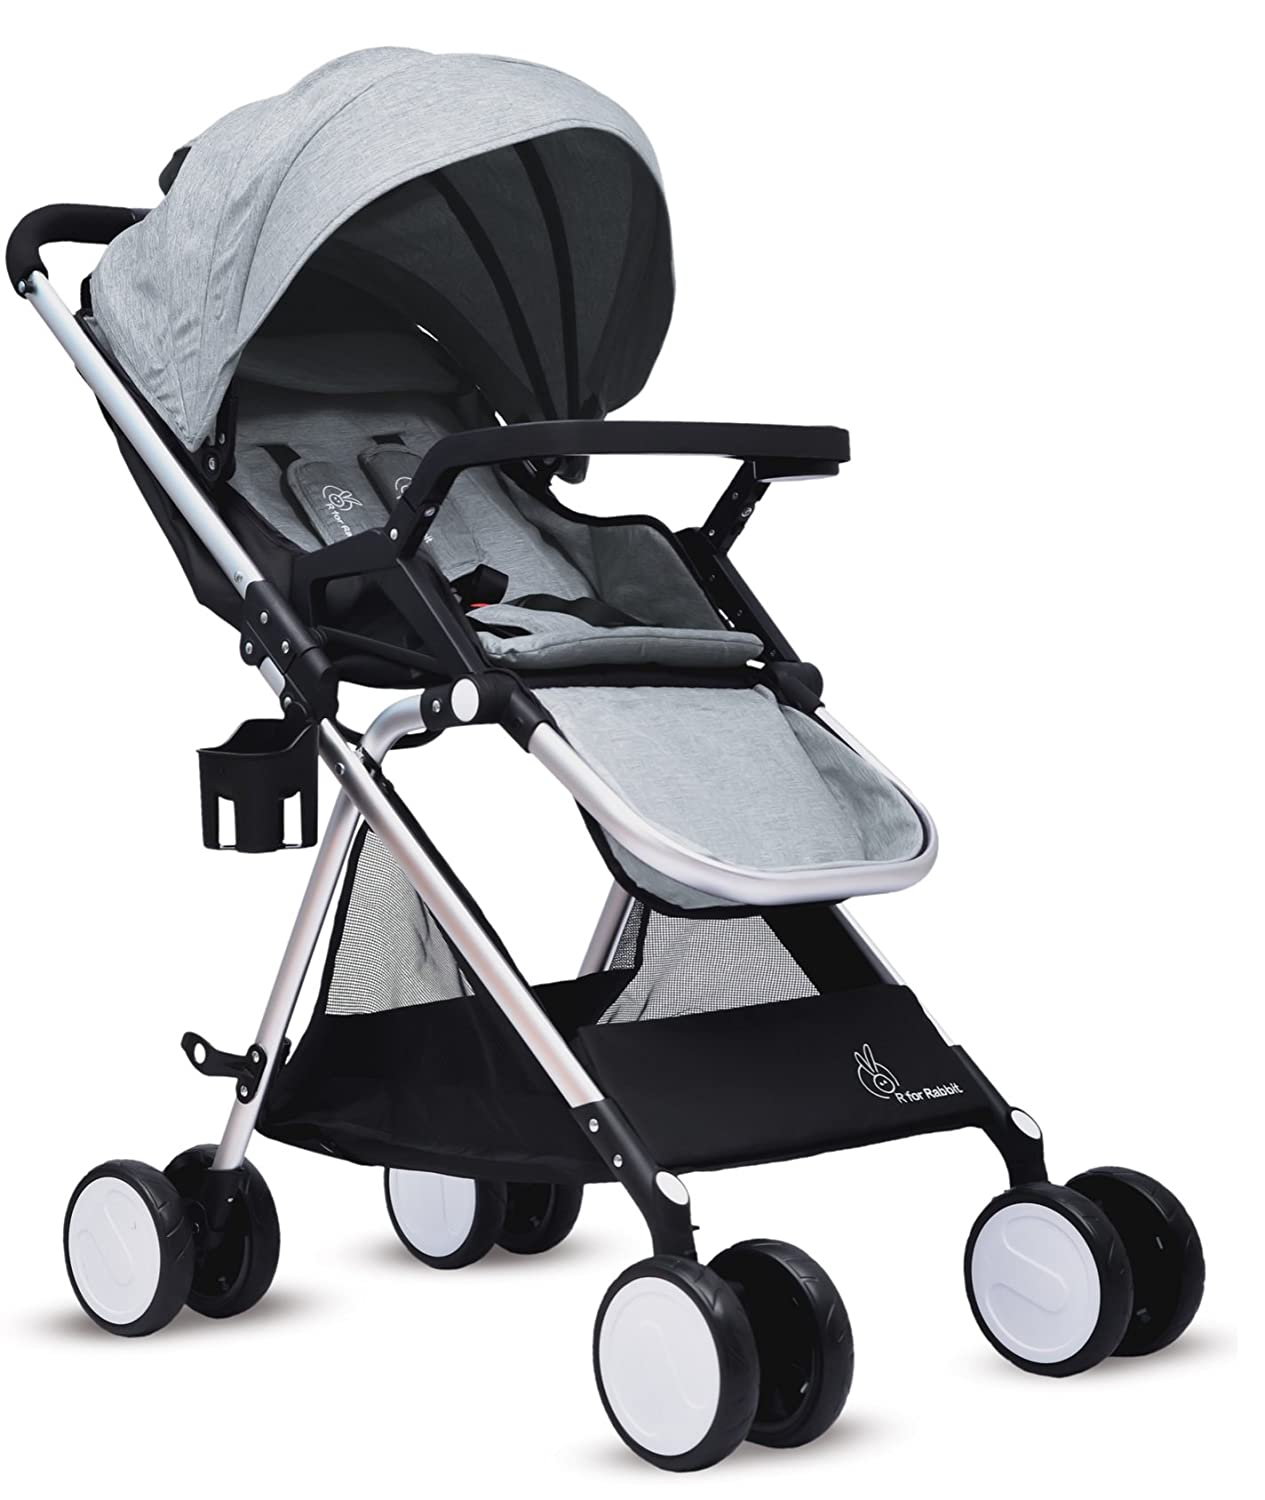 R for Rabbit Giggle Wiggle - The Feather Lite Stroller